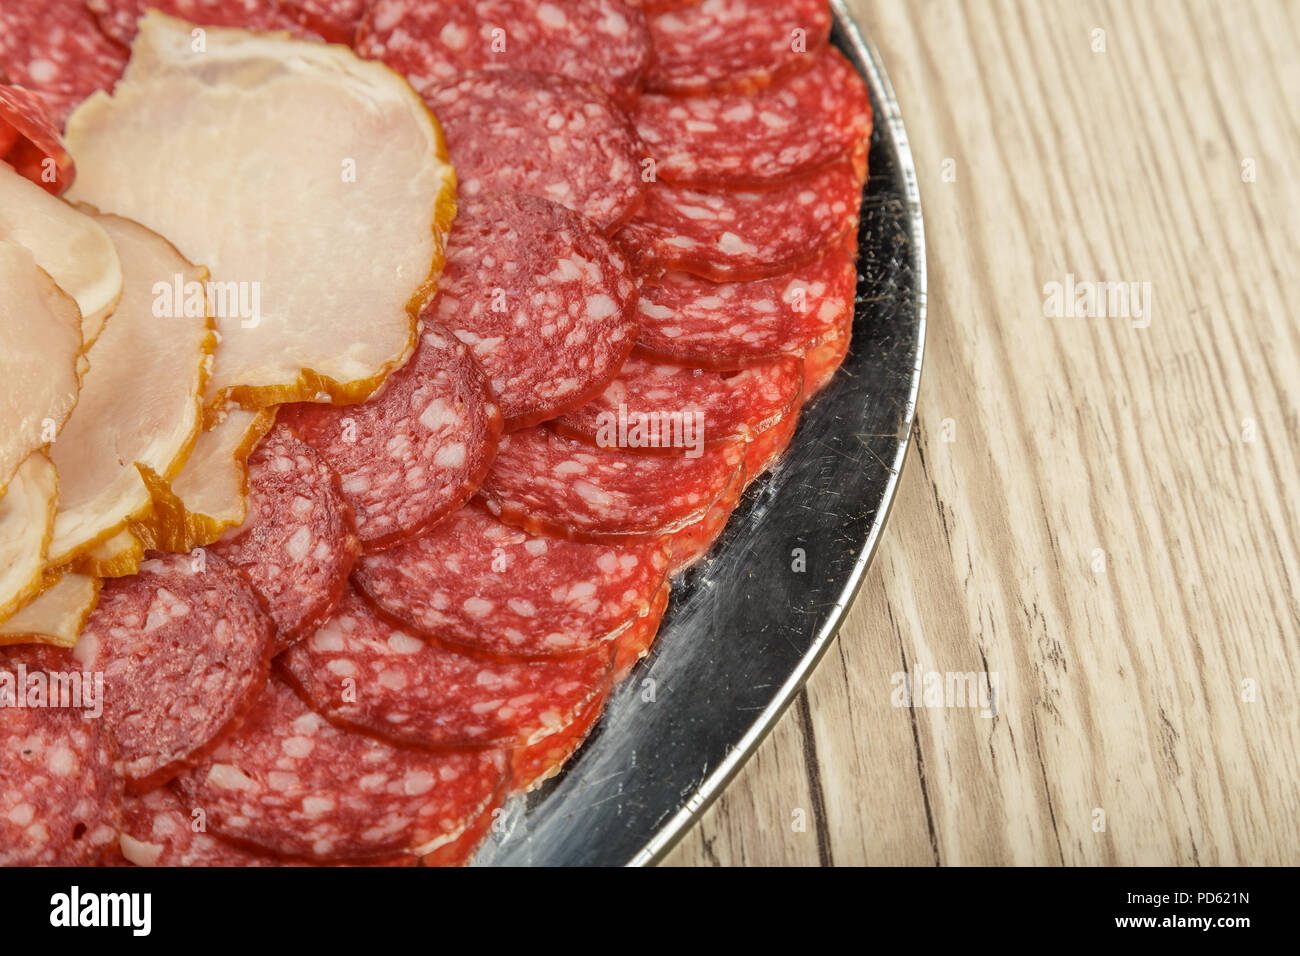 Sausage cuts of different varieties on a plate. Stock Photo